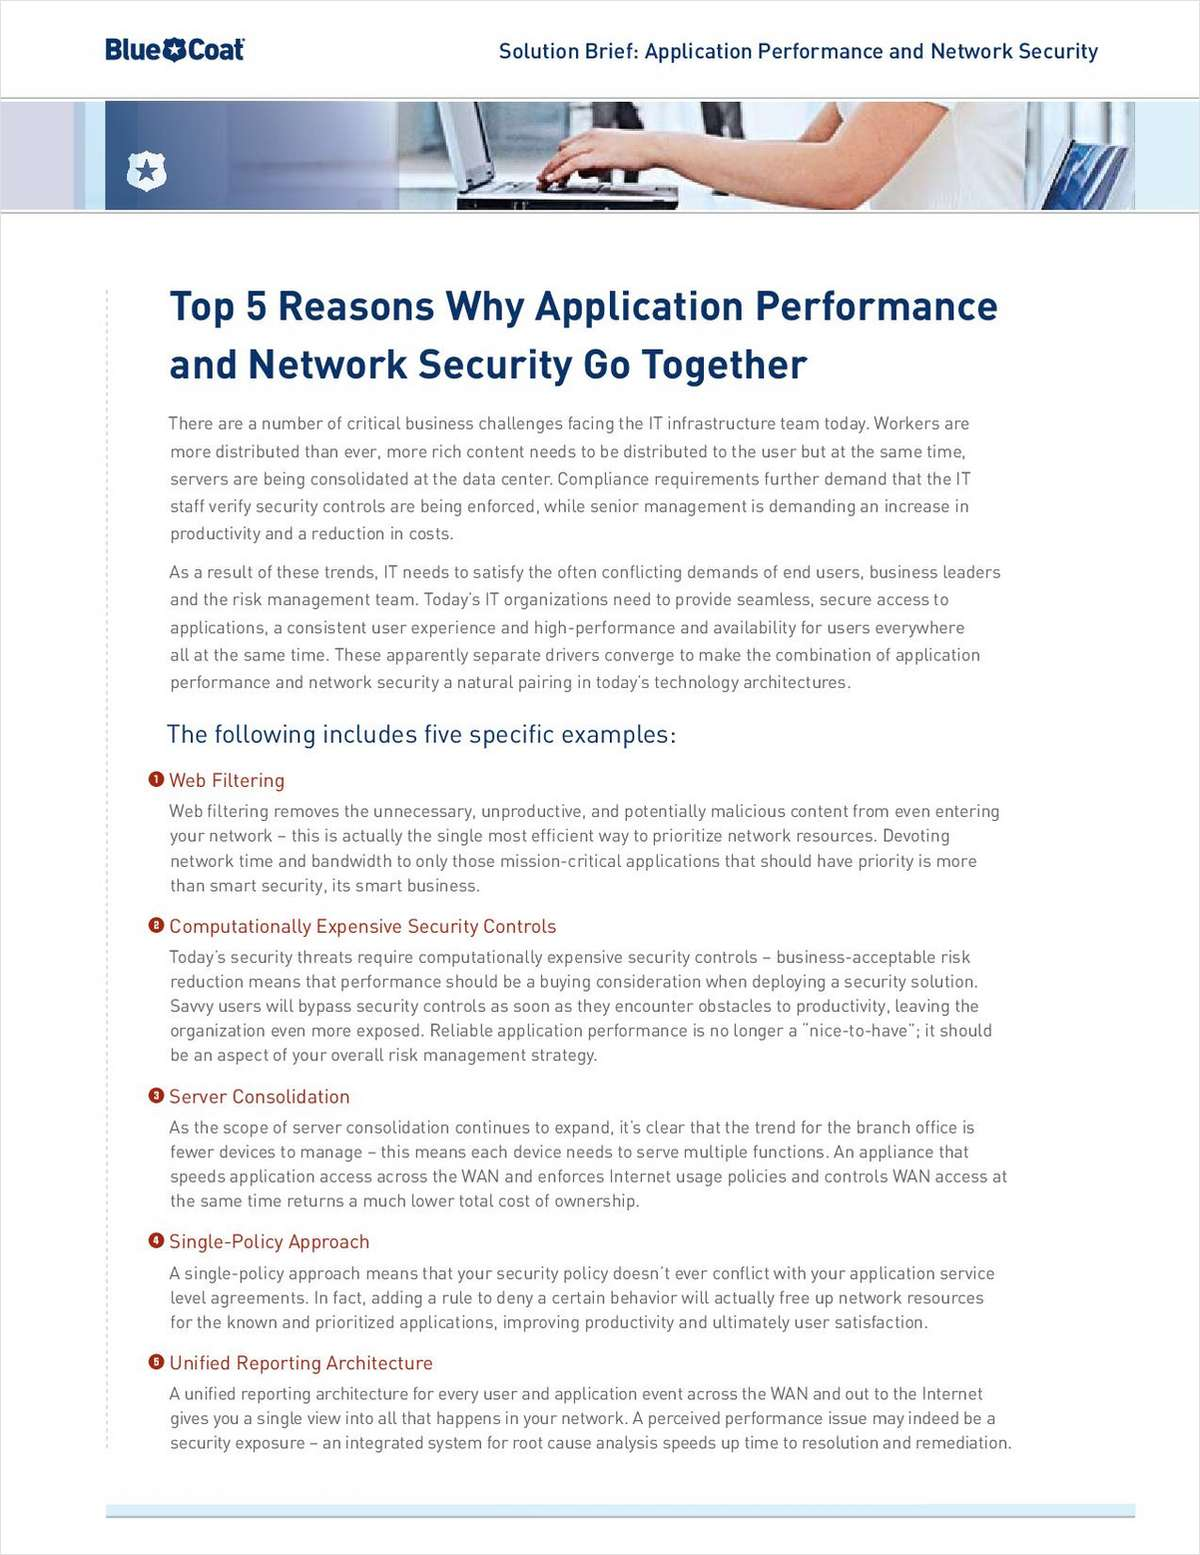 Top 5 Reasons Why Application Performance and Network Security Go Together